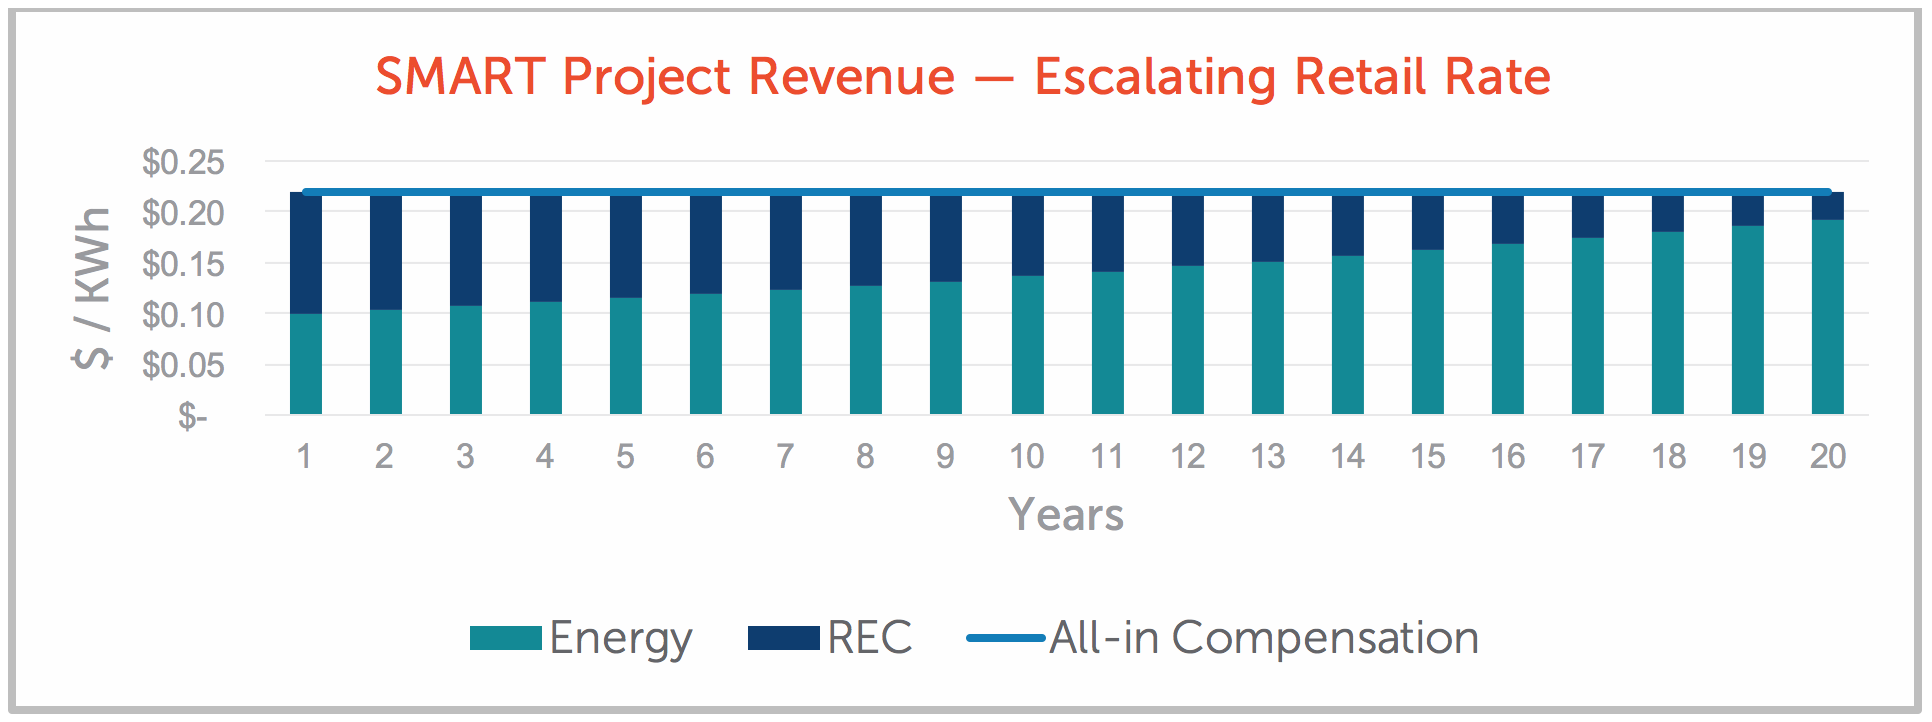 SMART Project Revenue — Escalating Retail Rate